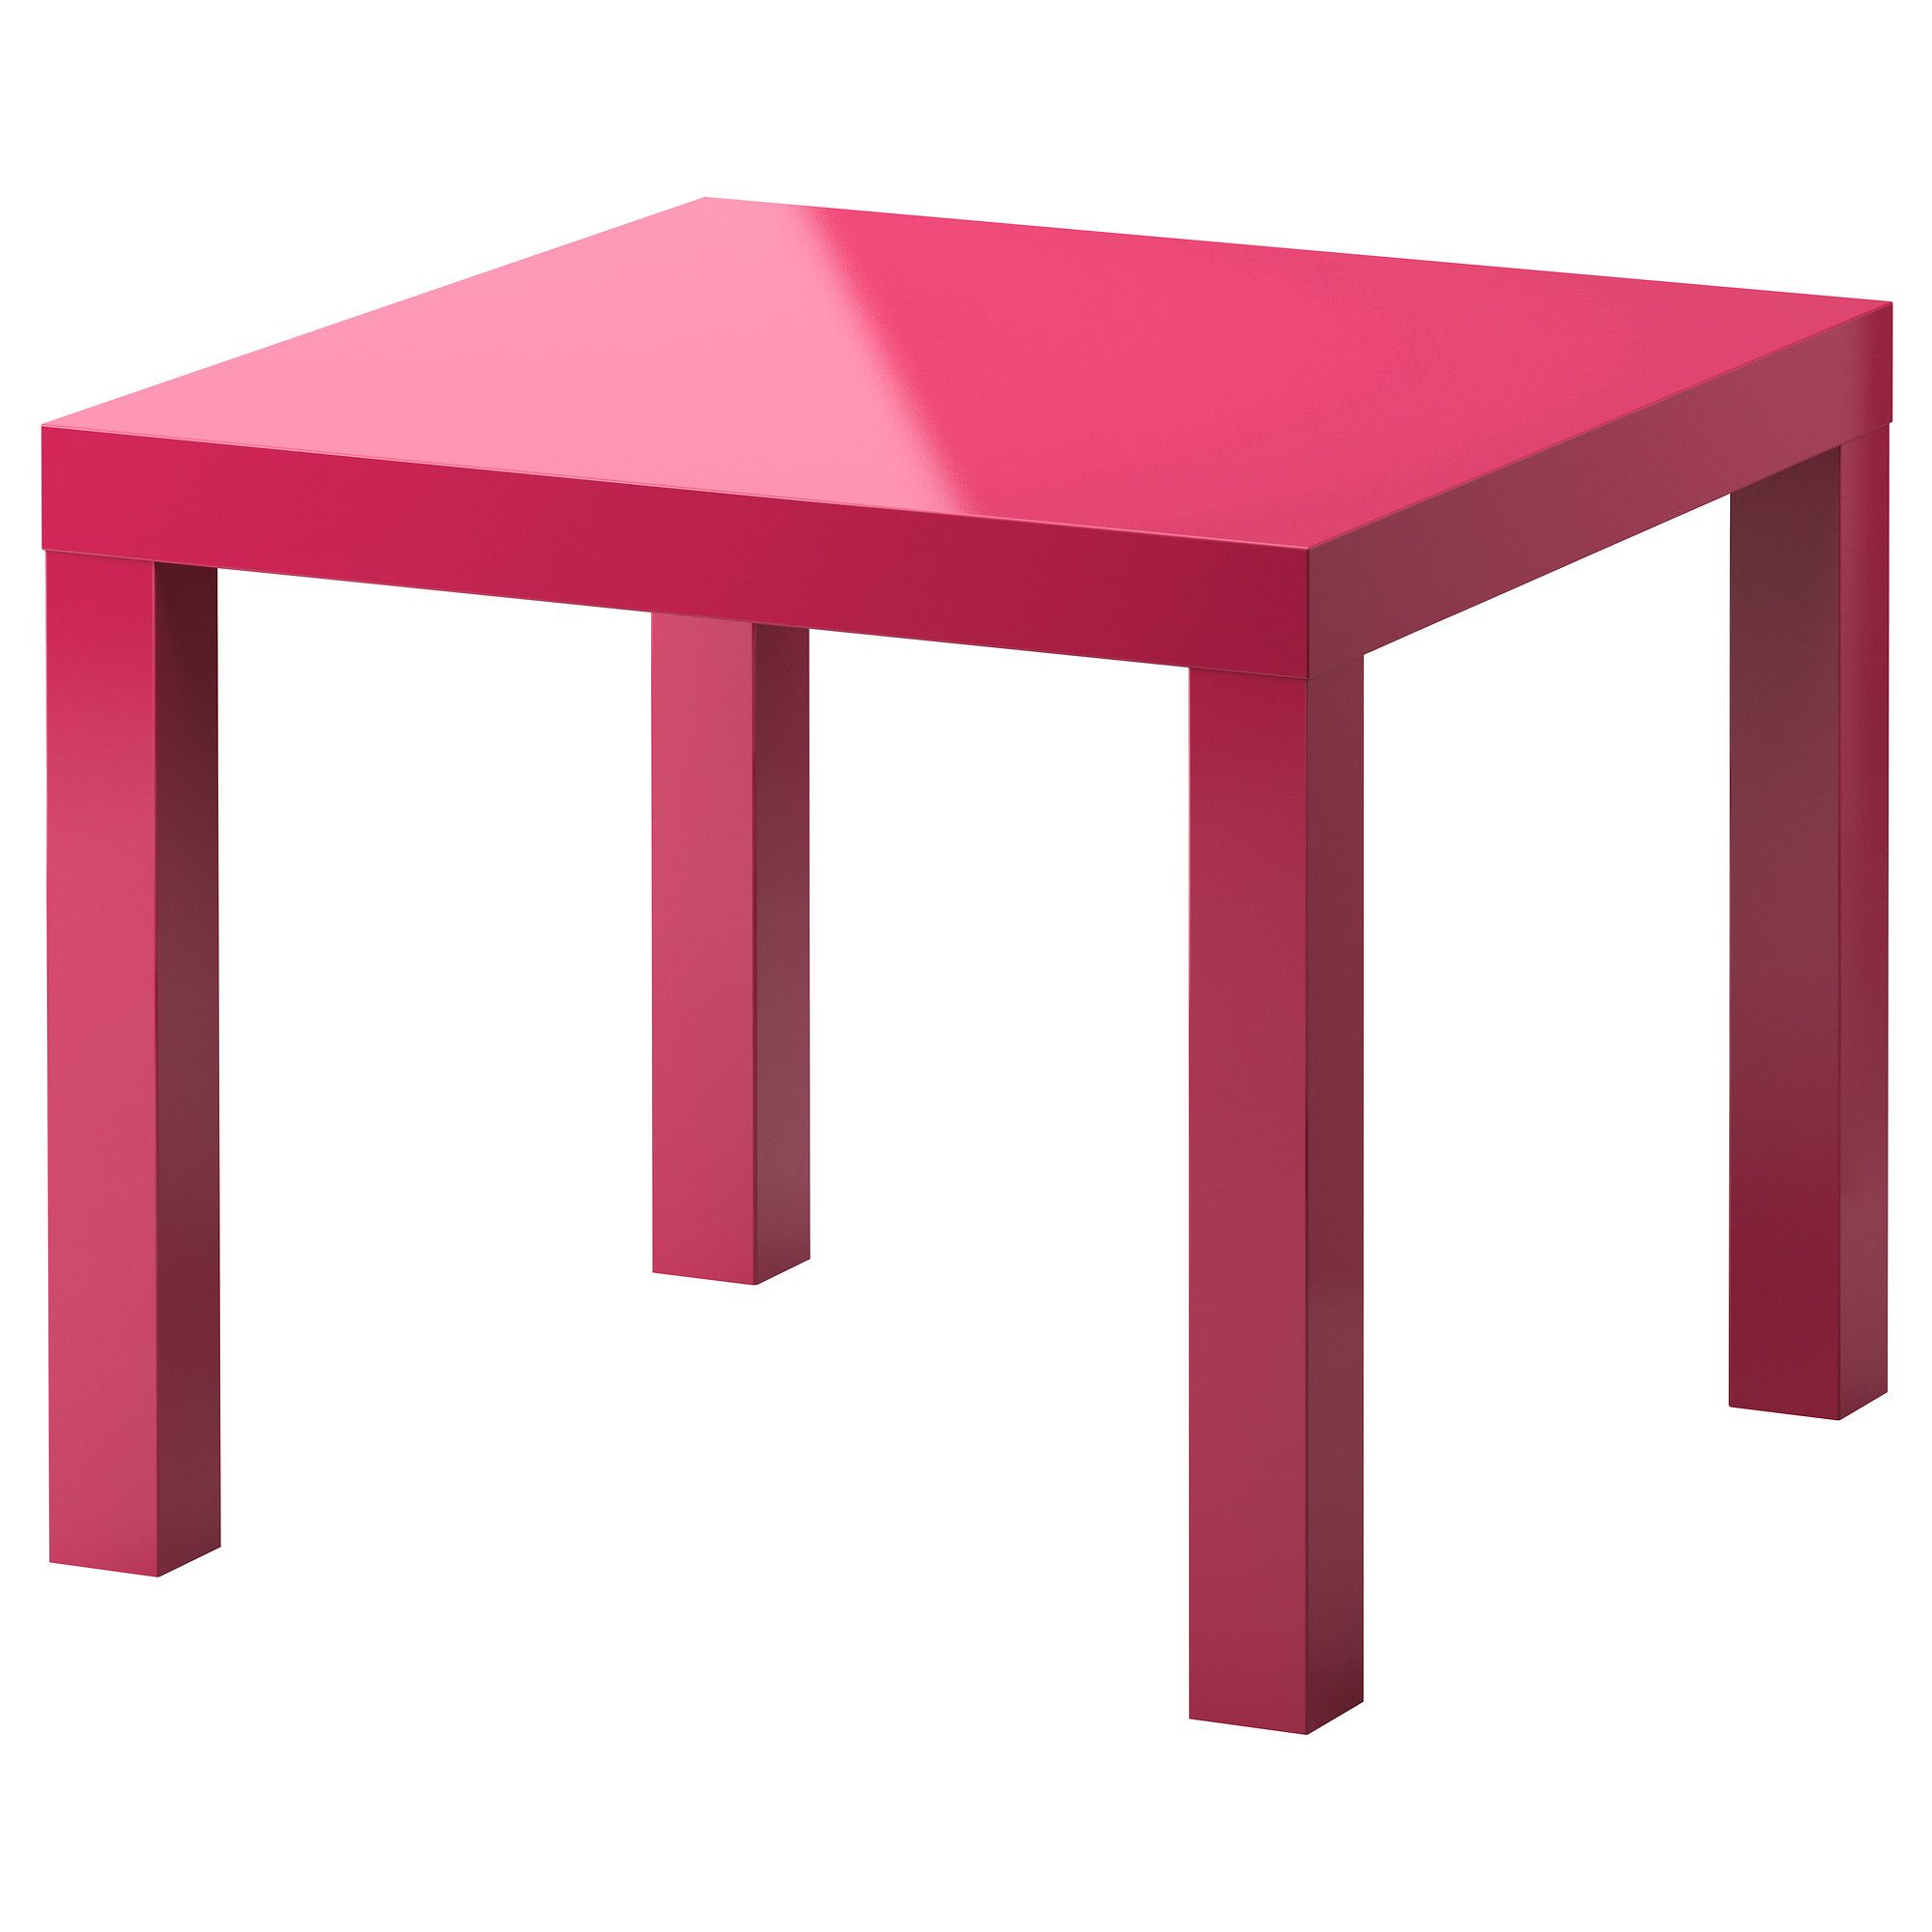 Lack side table high gloss pink 21 5 8x21 5 8 ikea for Ikea end tables salon